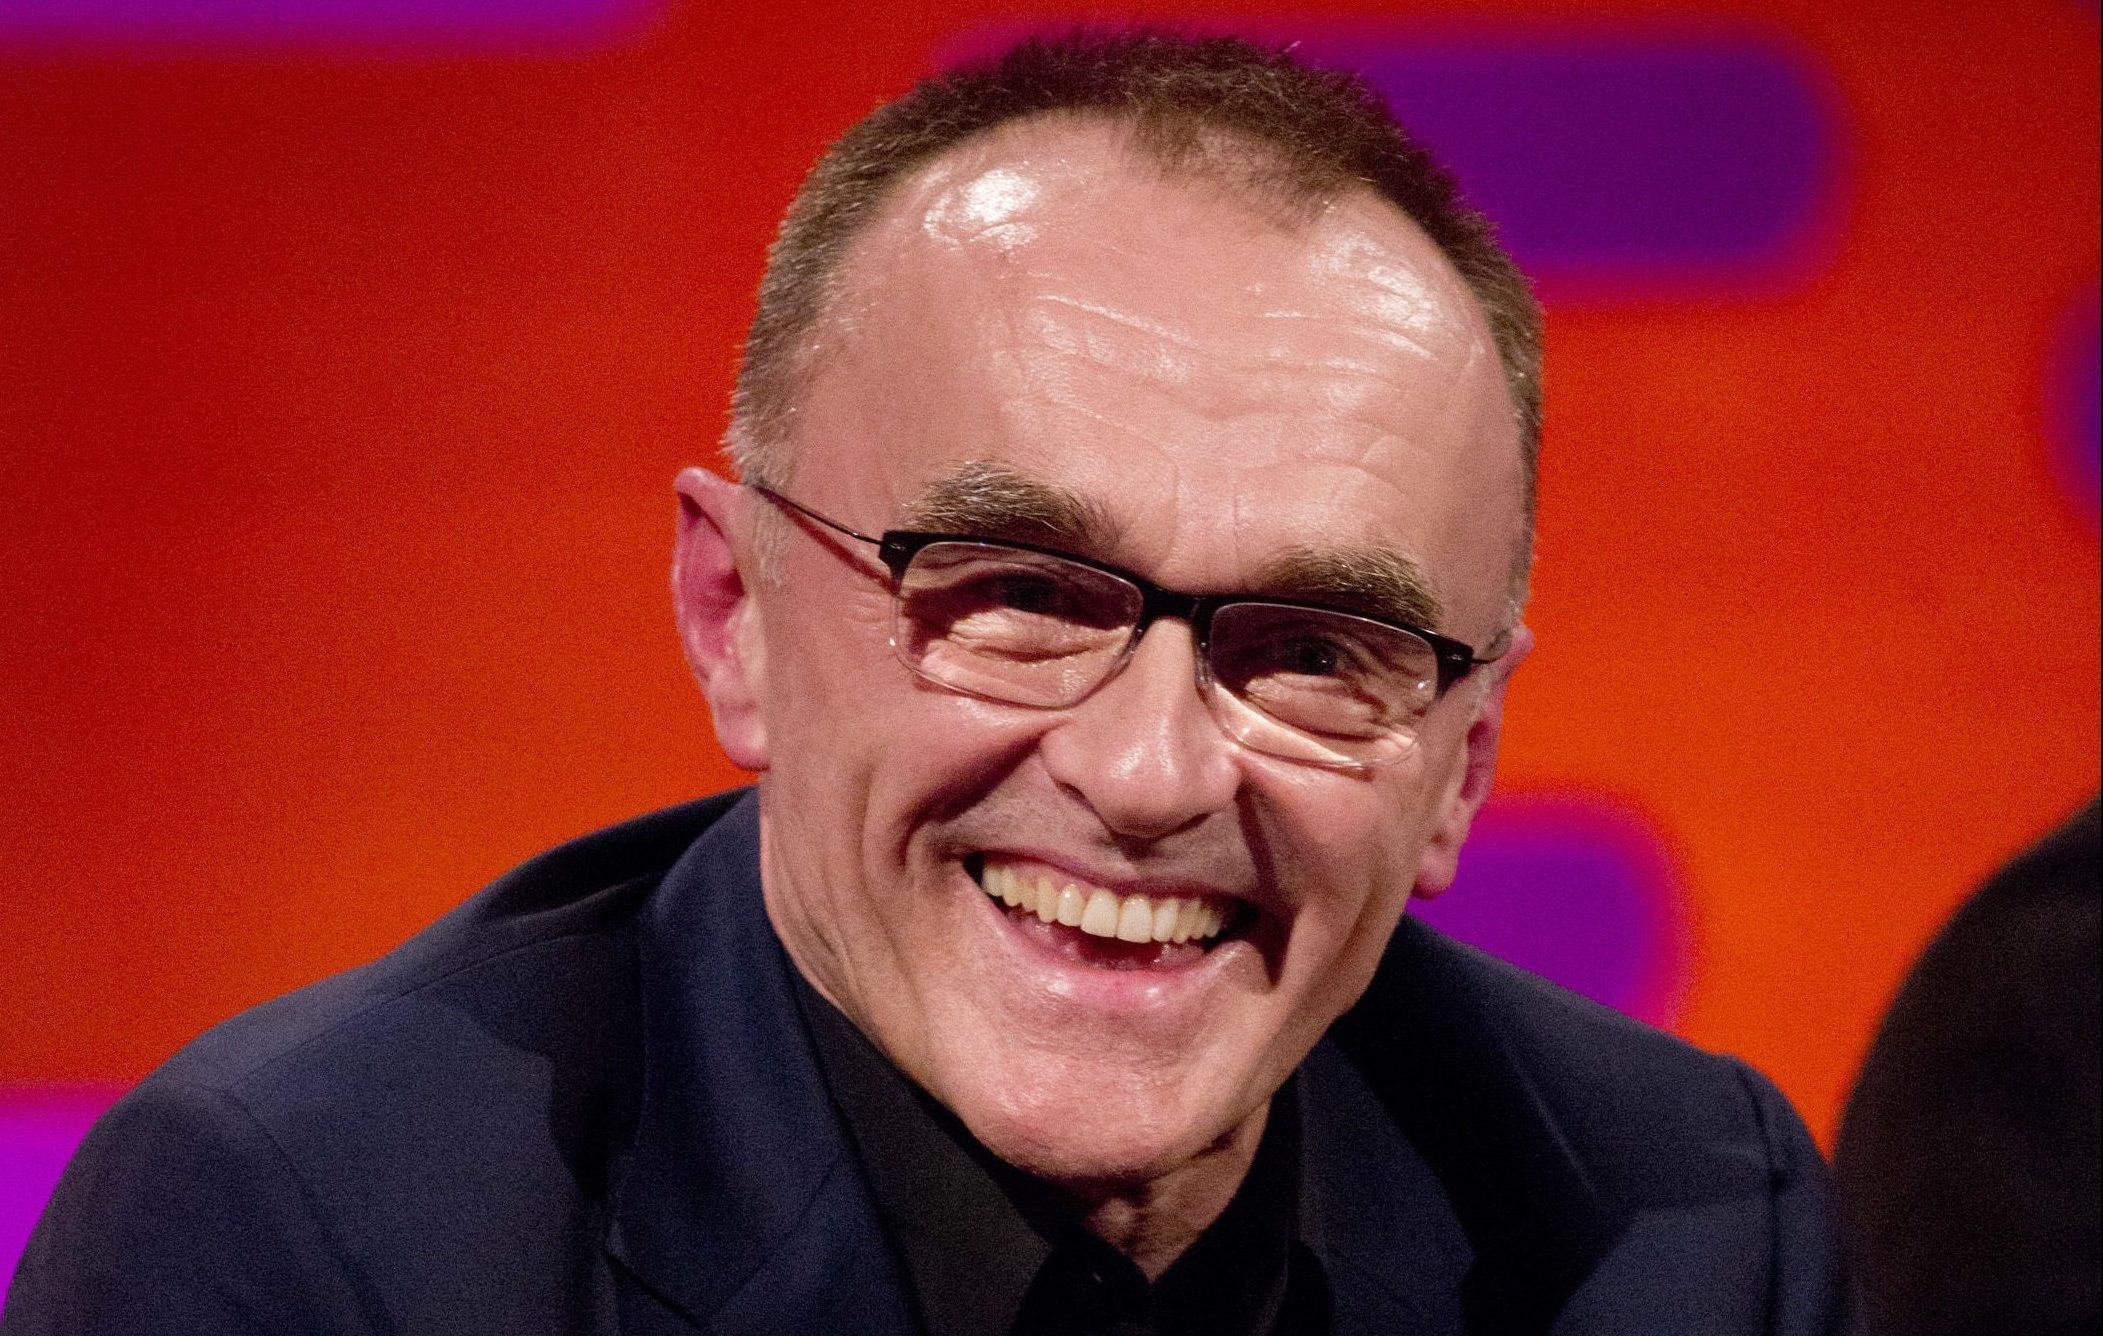 Danny Boyle (PA Images on behalf of So TV)